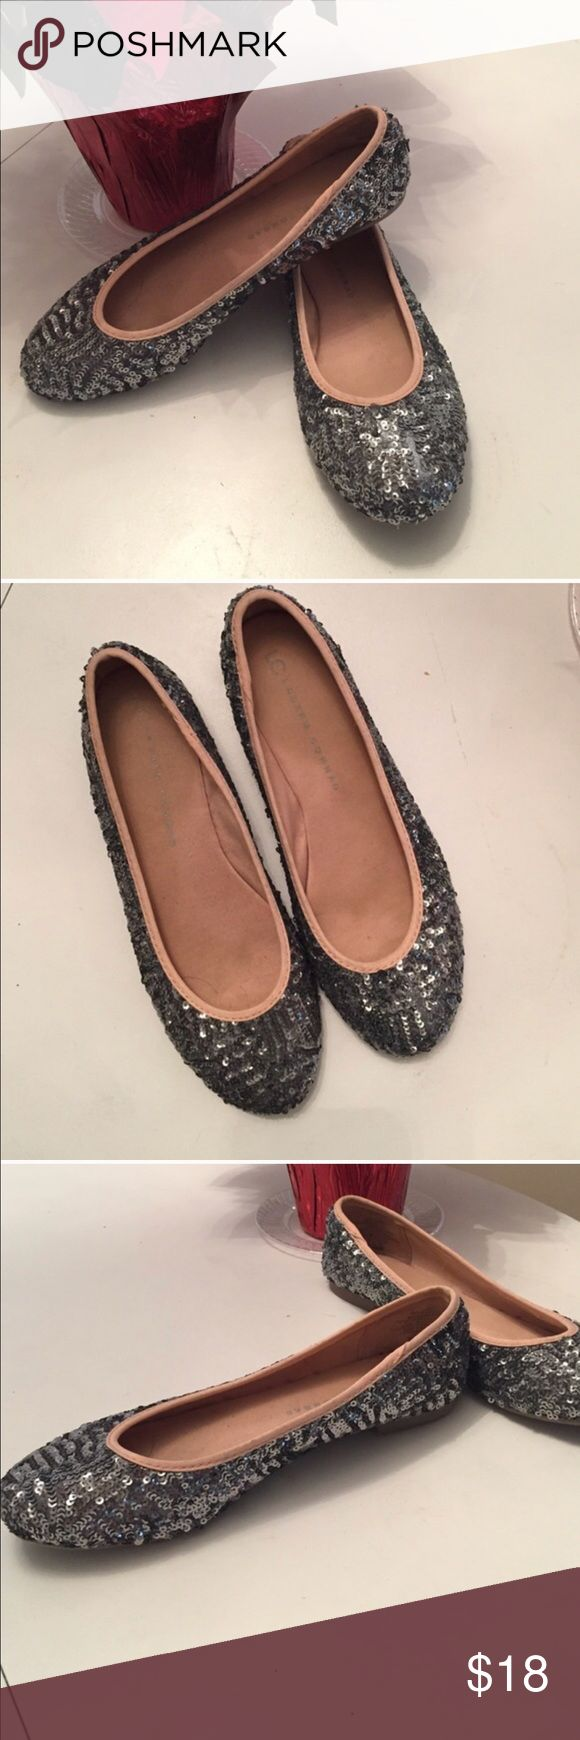 Lauren Conrad sequin flats Lauren Conrad flats super cute and add a little sparkle to any outfit. Pretty pewter gray color. In fantastic condition! LC Lauren Conrad Shoes Flats & Loafers